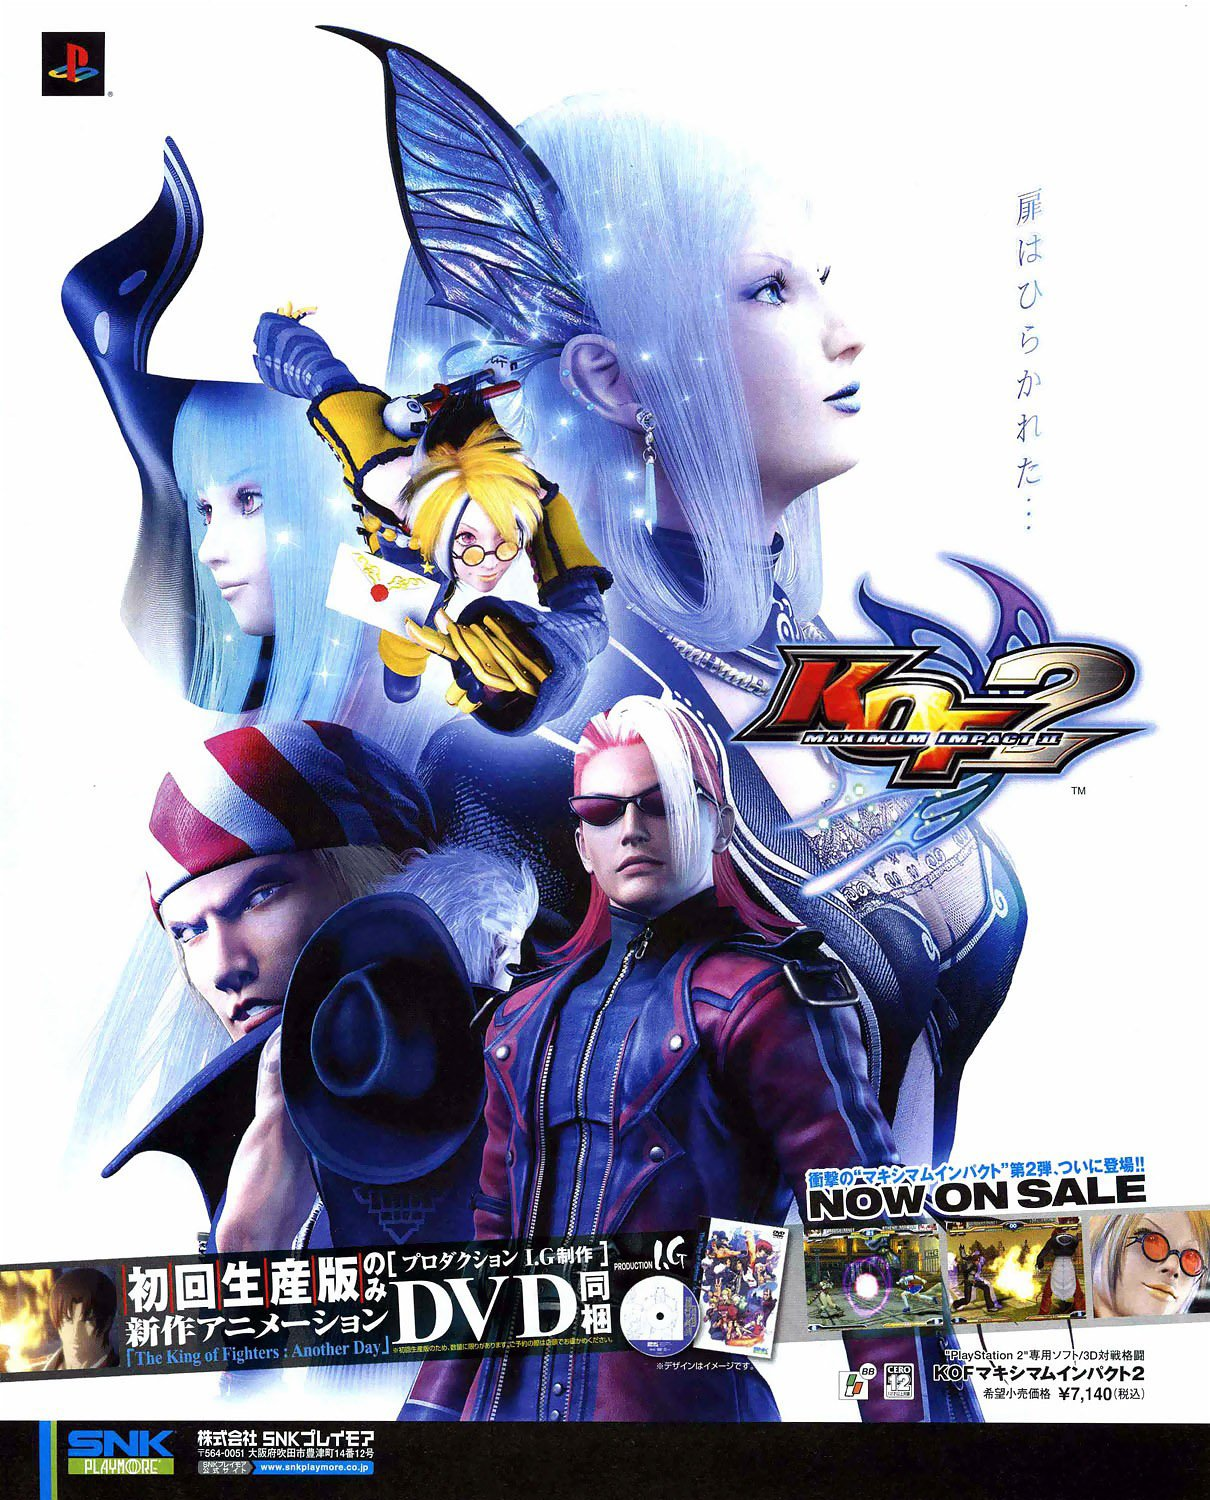 King of Fighters Maximum Impact 2, The (Japan) (c)